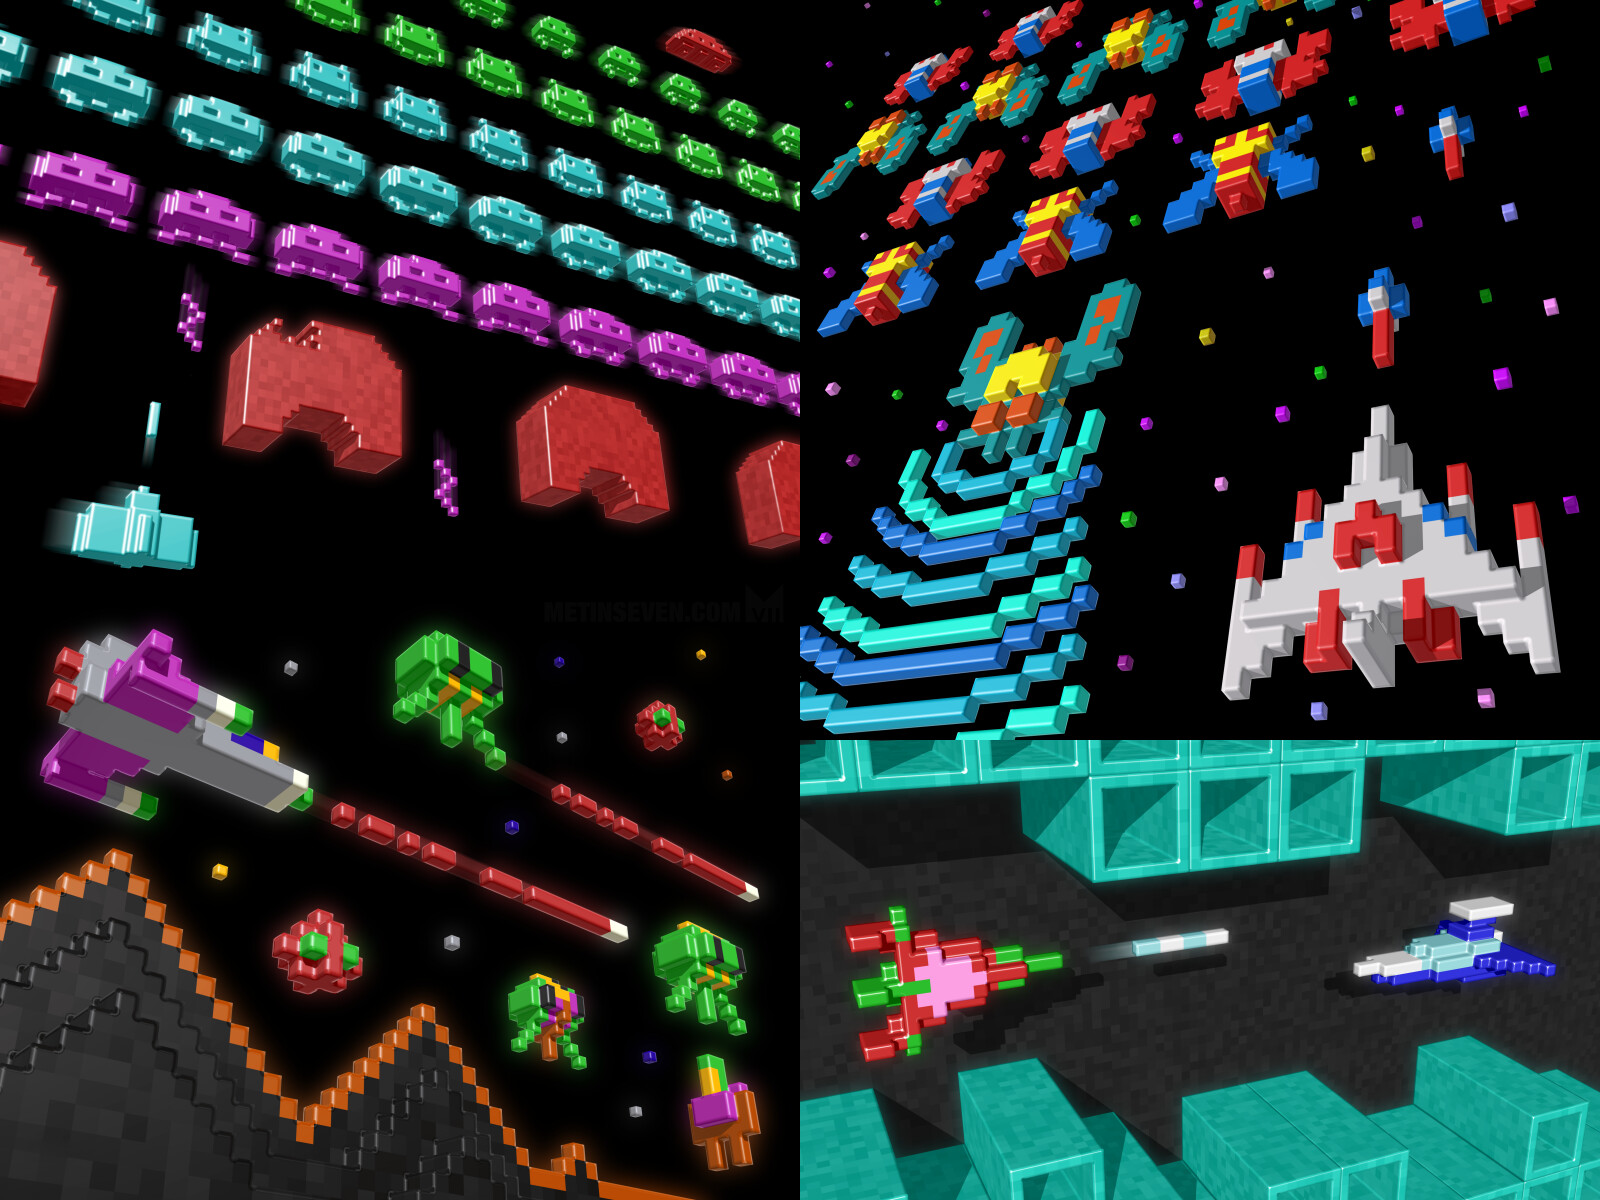 Voxel tributes to classic 8-bit games